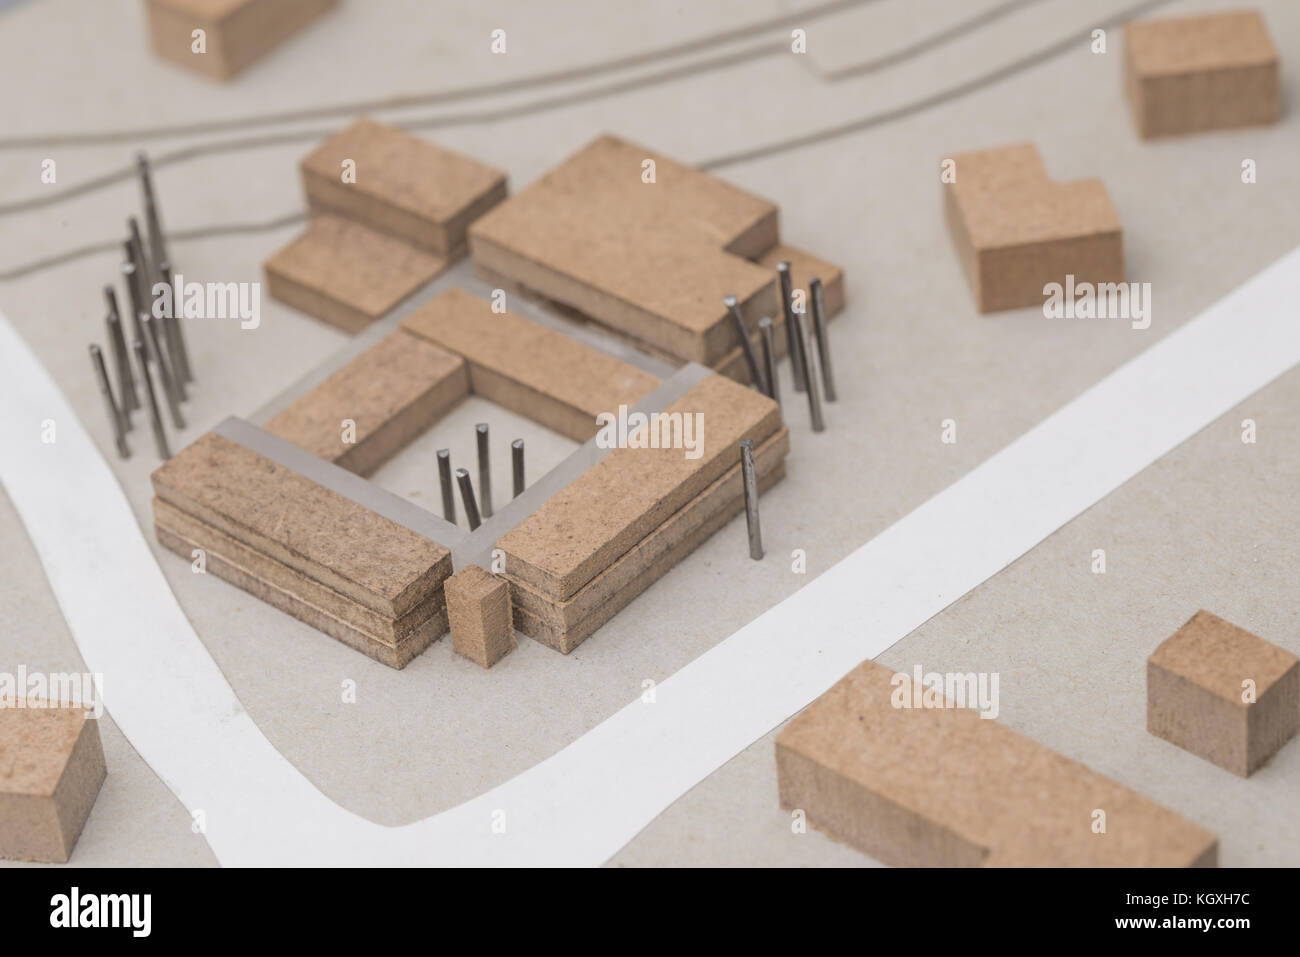 Architecture and Urban Planning Model Stock Photo